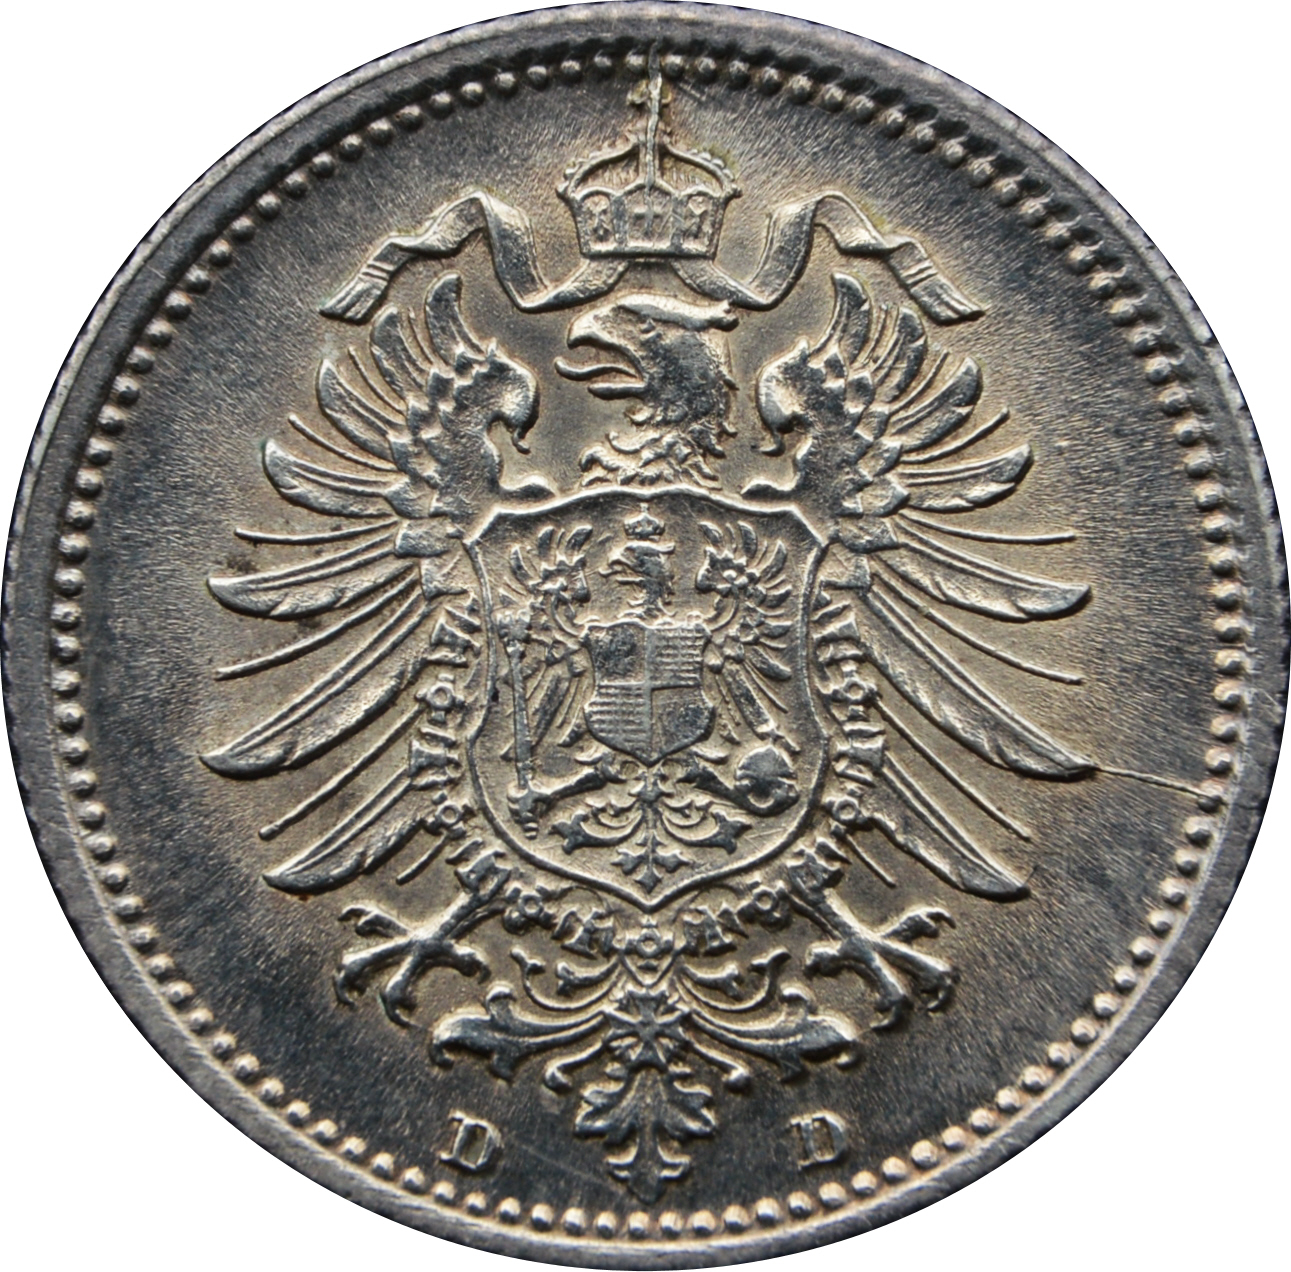 Germany German Empire Lot Of 7 Silver 20 Pfennig Coins 1874 D 1875 C /& E 1876 E F 1876 B J Good Mix Some Nicer Great Charm Idea